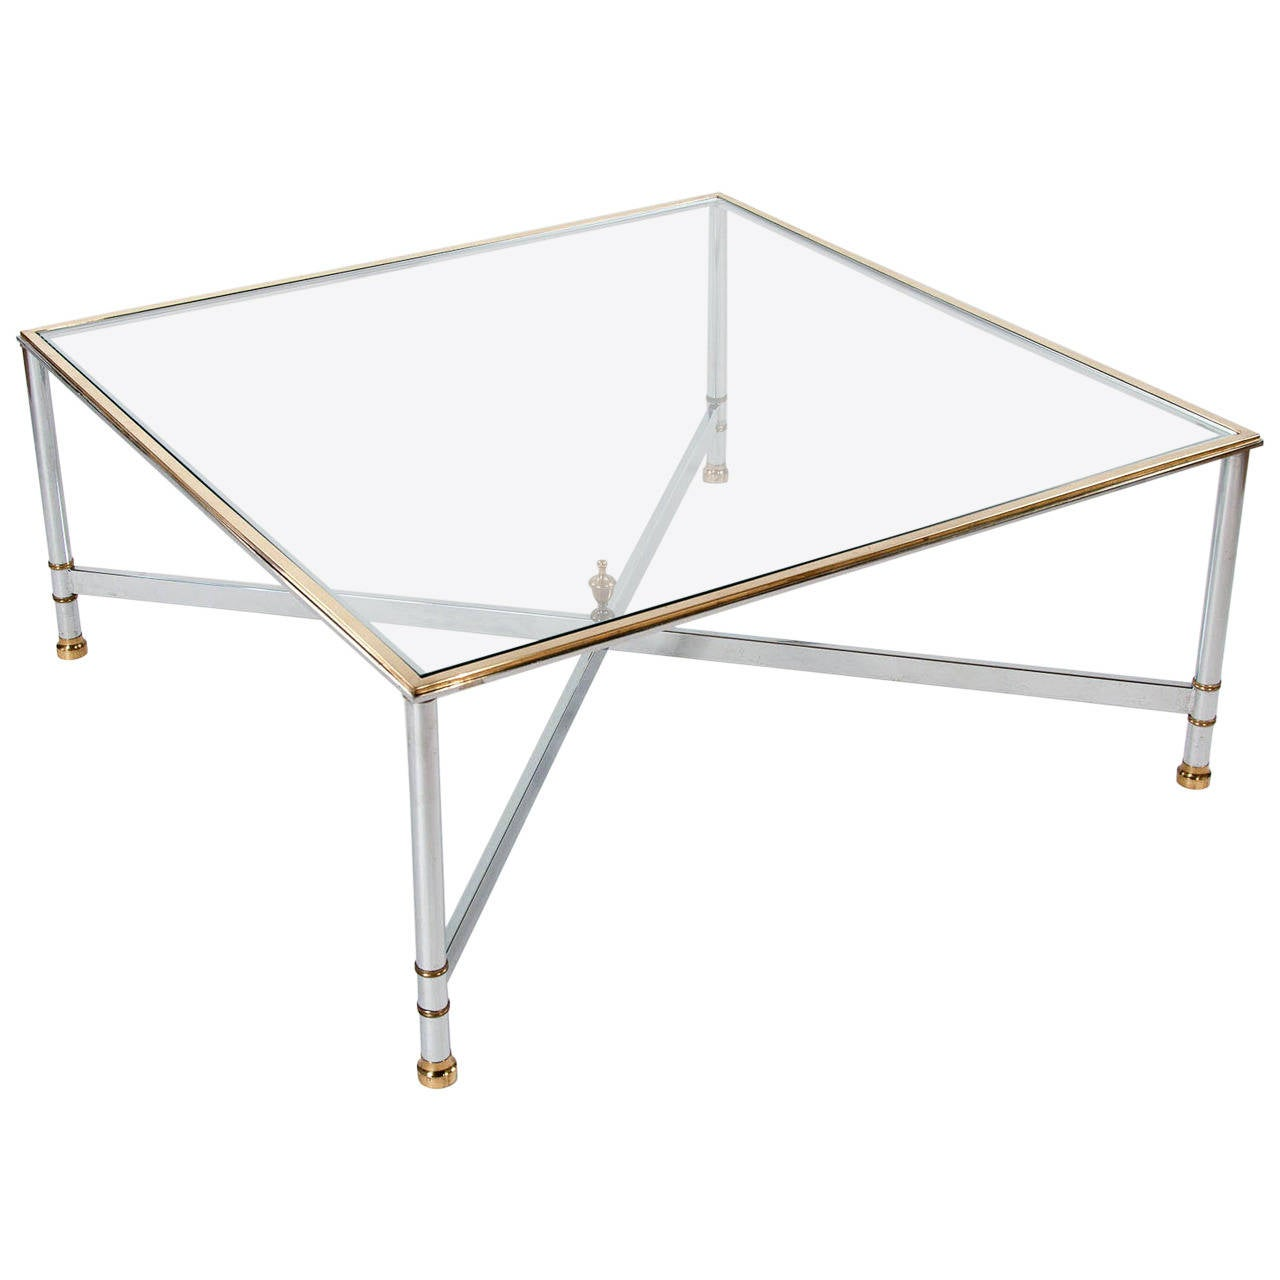 1970s large square glass coffee table at 1stdibs for Large glass coffee table